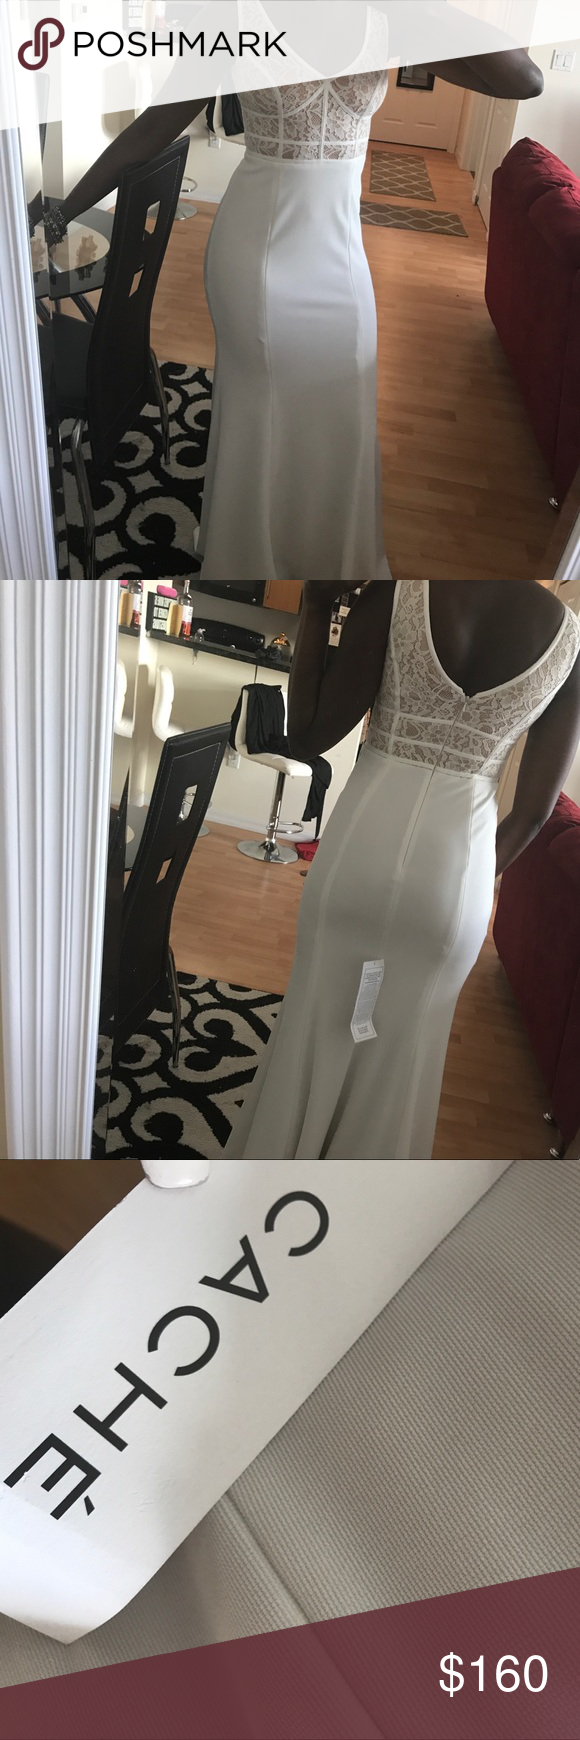 Cache Evening Gown (never worn, tags attached) NWT   White evening ...